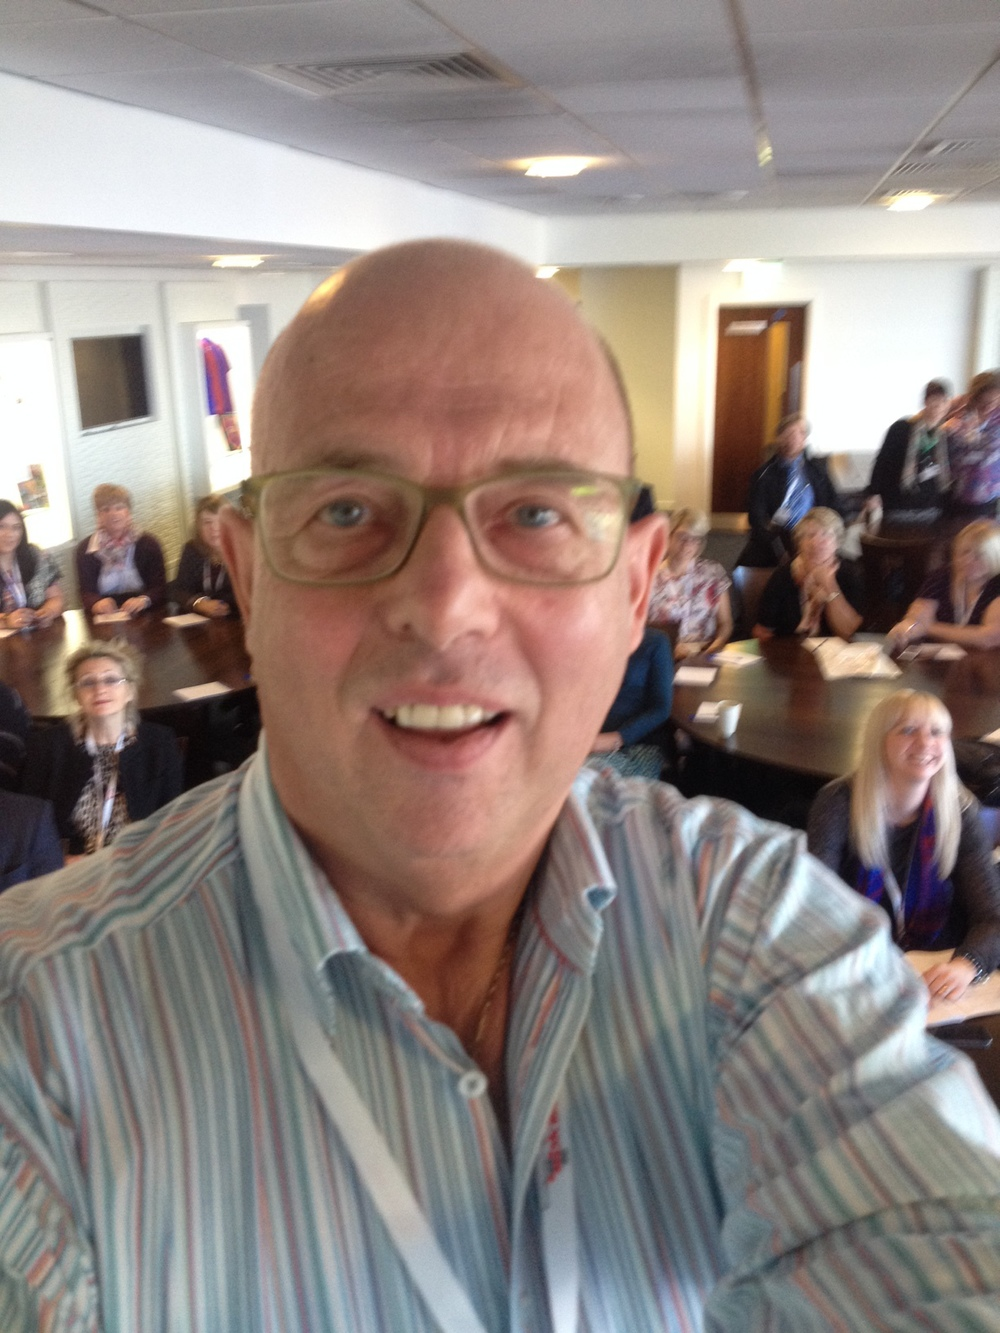 Selfie at Skills conference